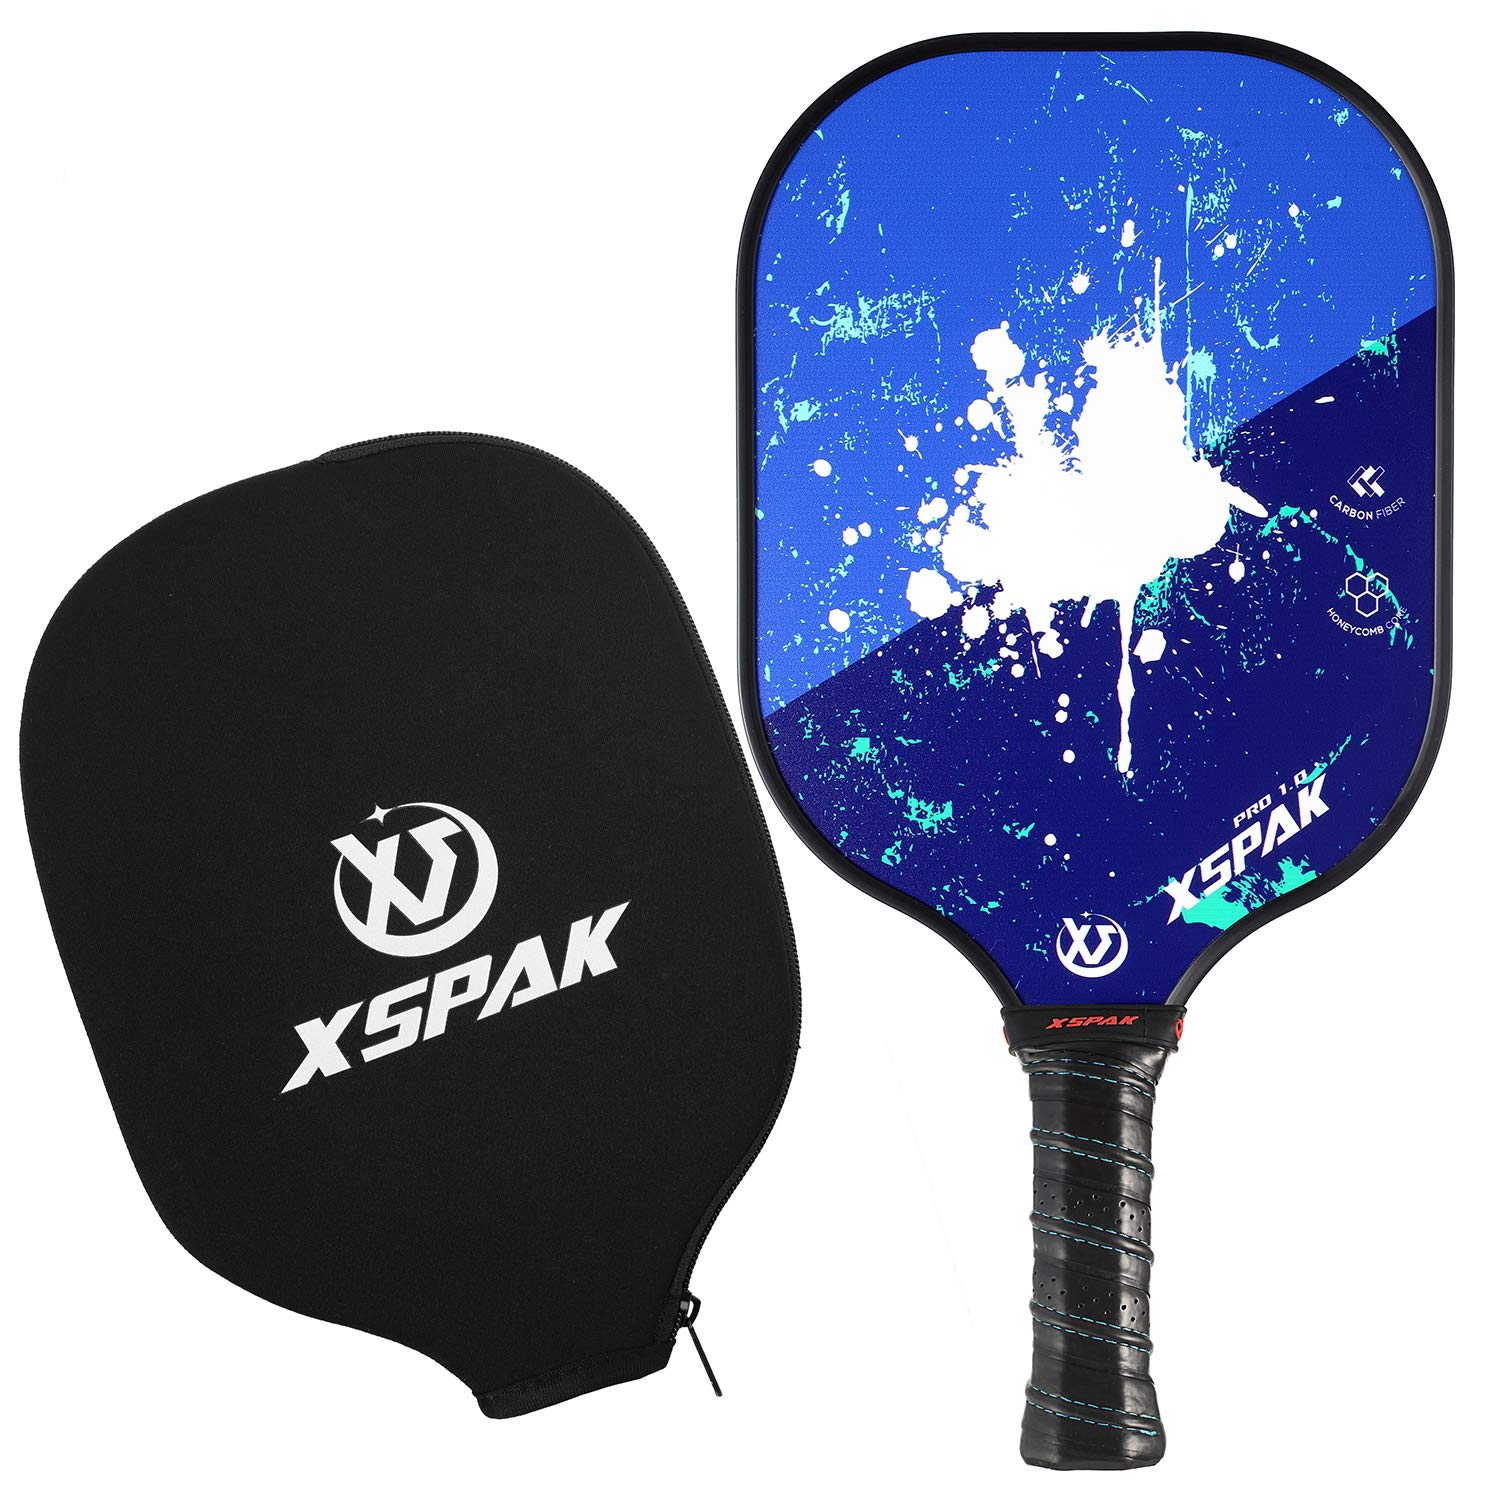 XS XSPAK Graphite Pickleball Paddle Set, Lightweight Graphite Honeycomb  Composite Core Paddles Single Wrap or Sets of 2, USAPA Approved.